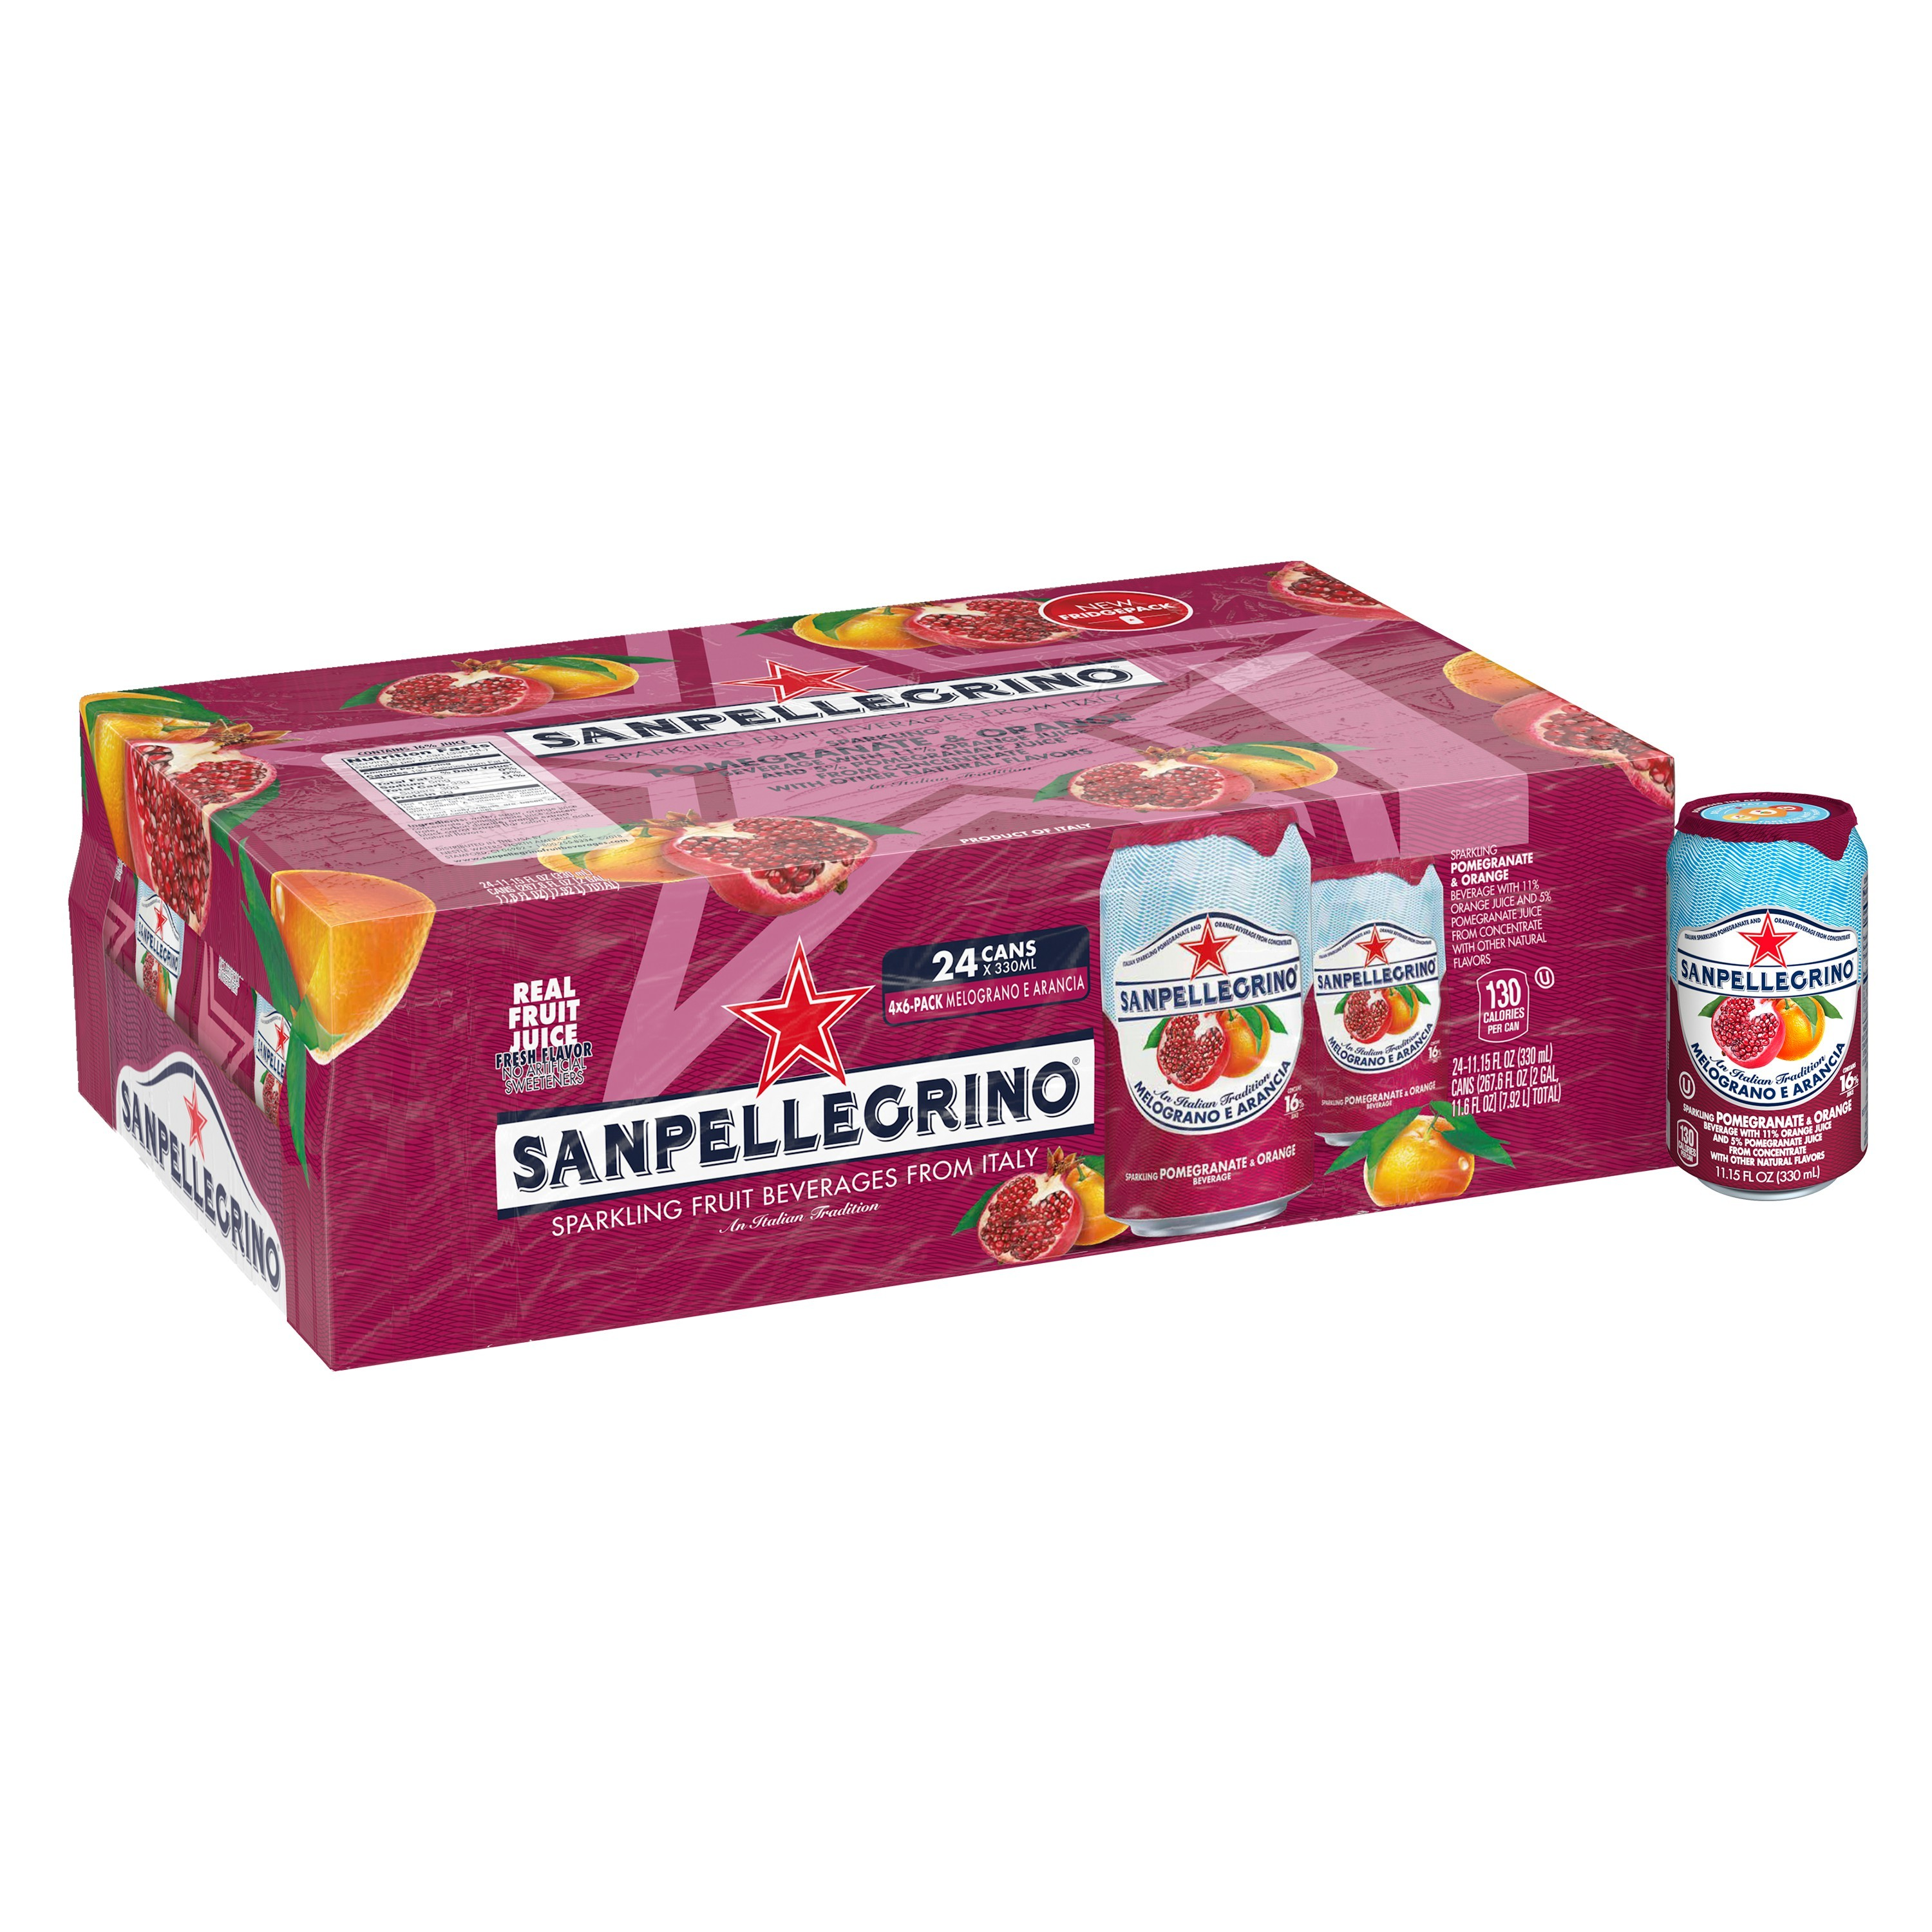 SANPELLEGRINO Sparkling Fruit Beverages, Melograno e Arancia/Pomegranate & Orange 11.15-ounce cans (Total of 24)